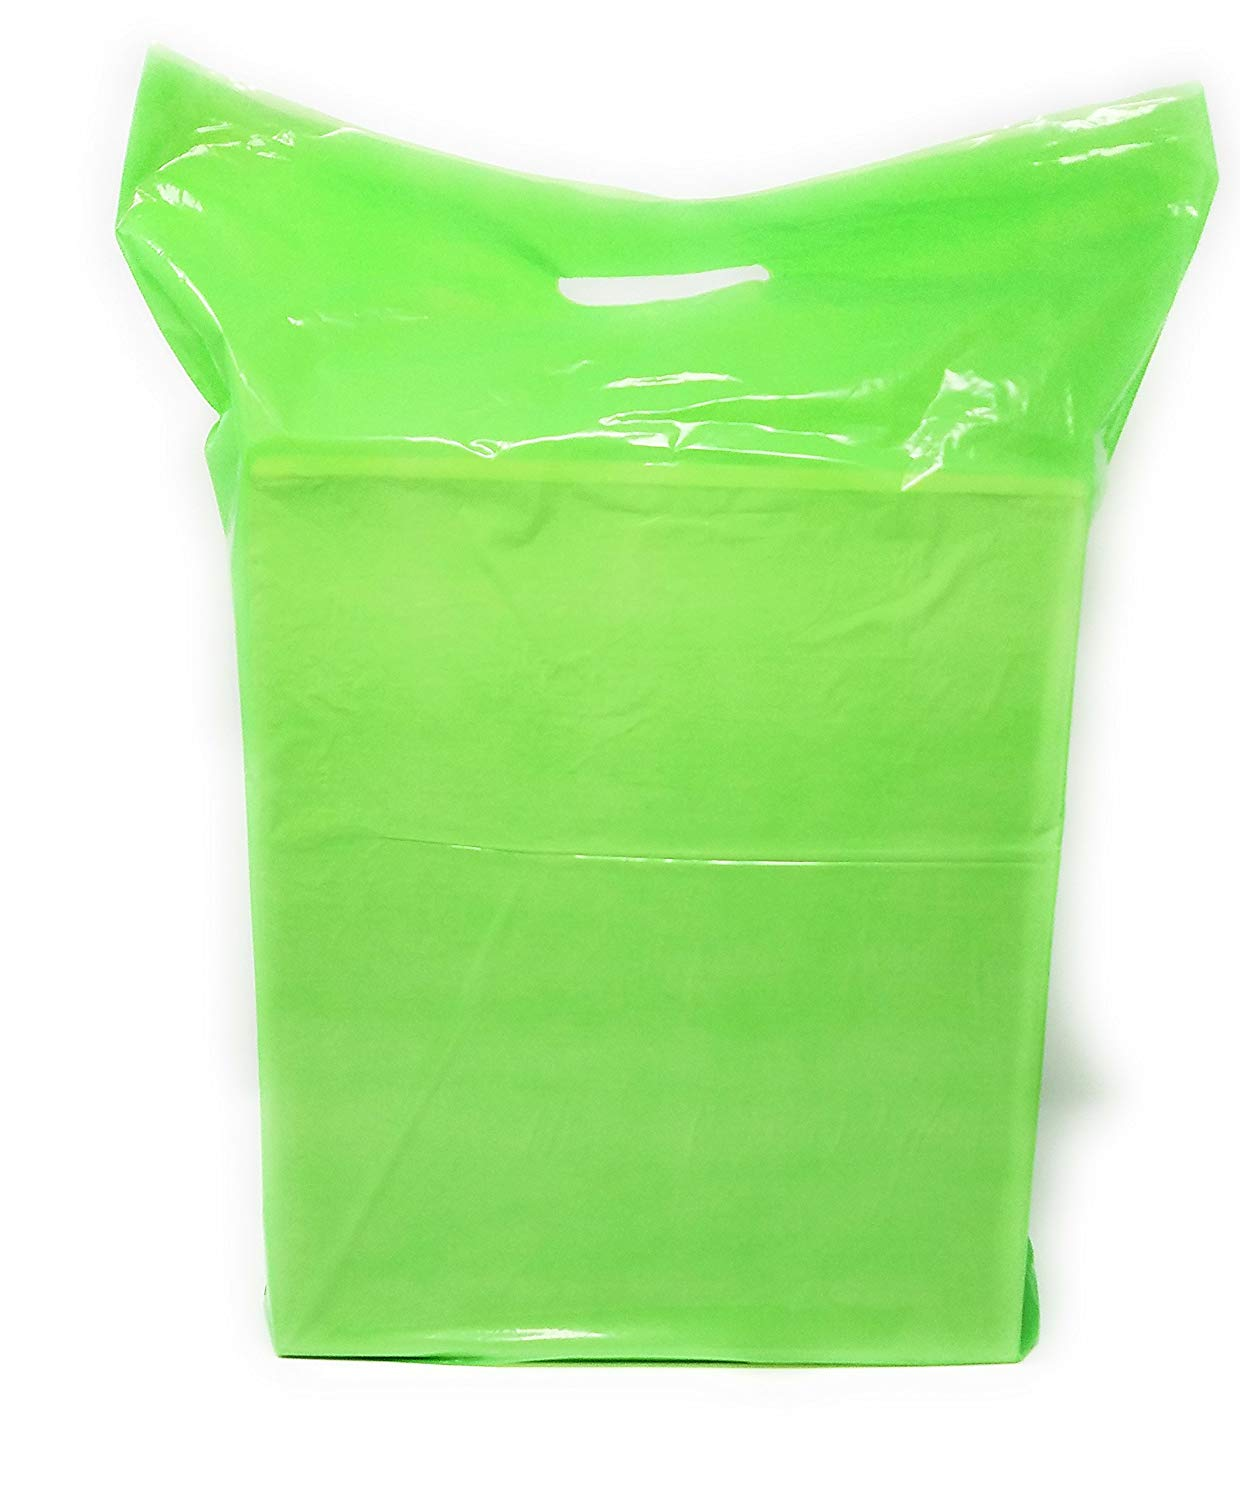 """Green Merchandise Plastic Shopping Bags - 100 Pack 15"""" x 18"""" 1.25 mil Thick, 2 in Gusset 